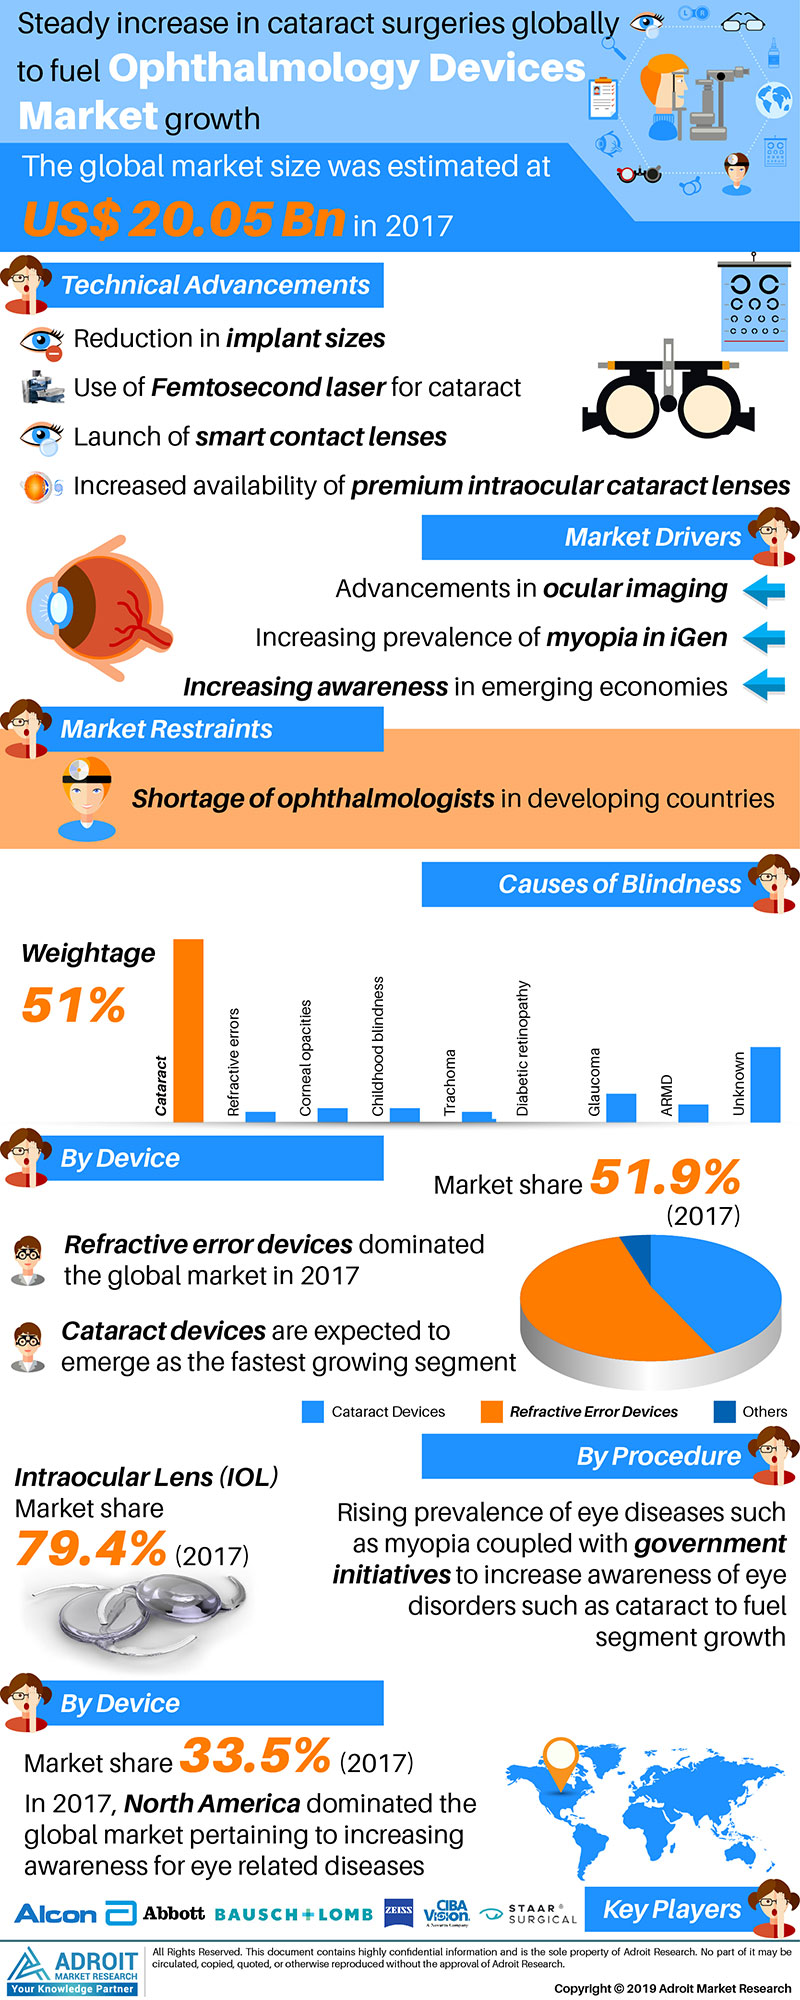 Global Ophthalmology Devices Market Size 2017 By Type, Region and Forecast 2018 to 2025